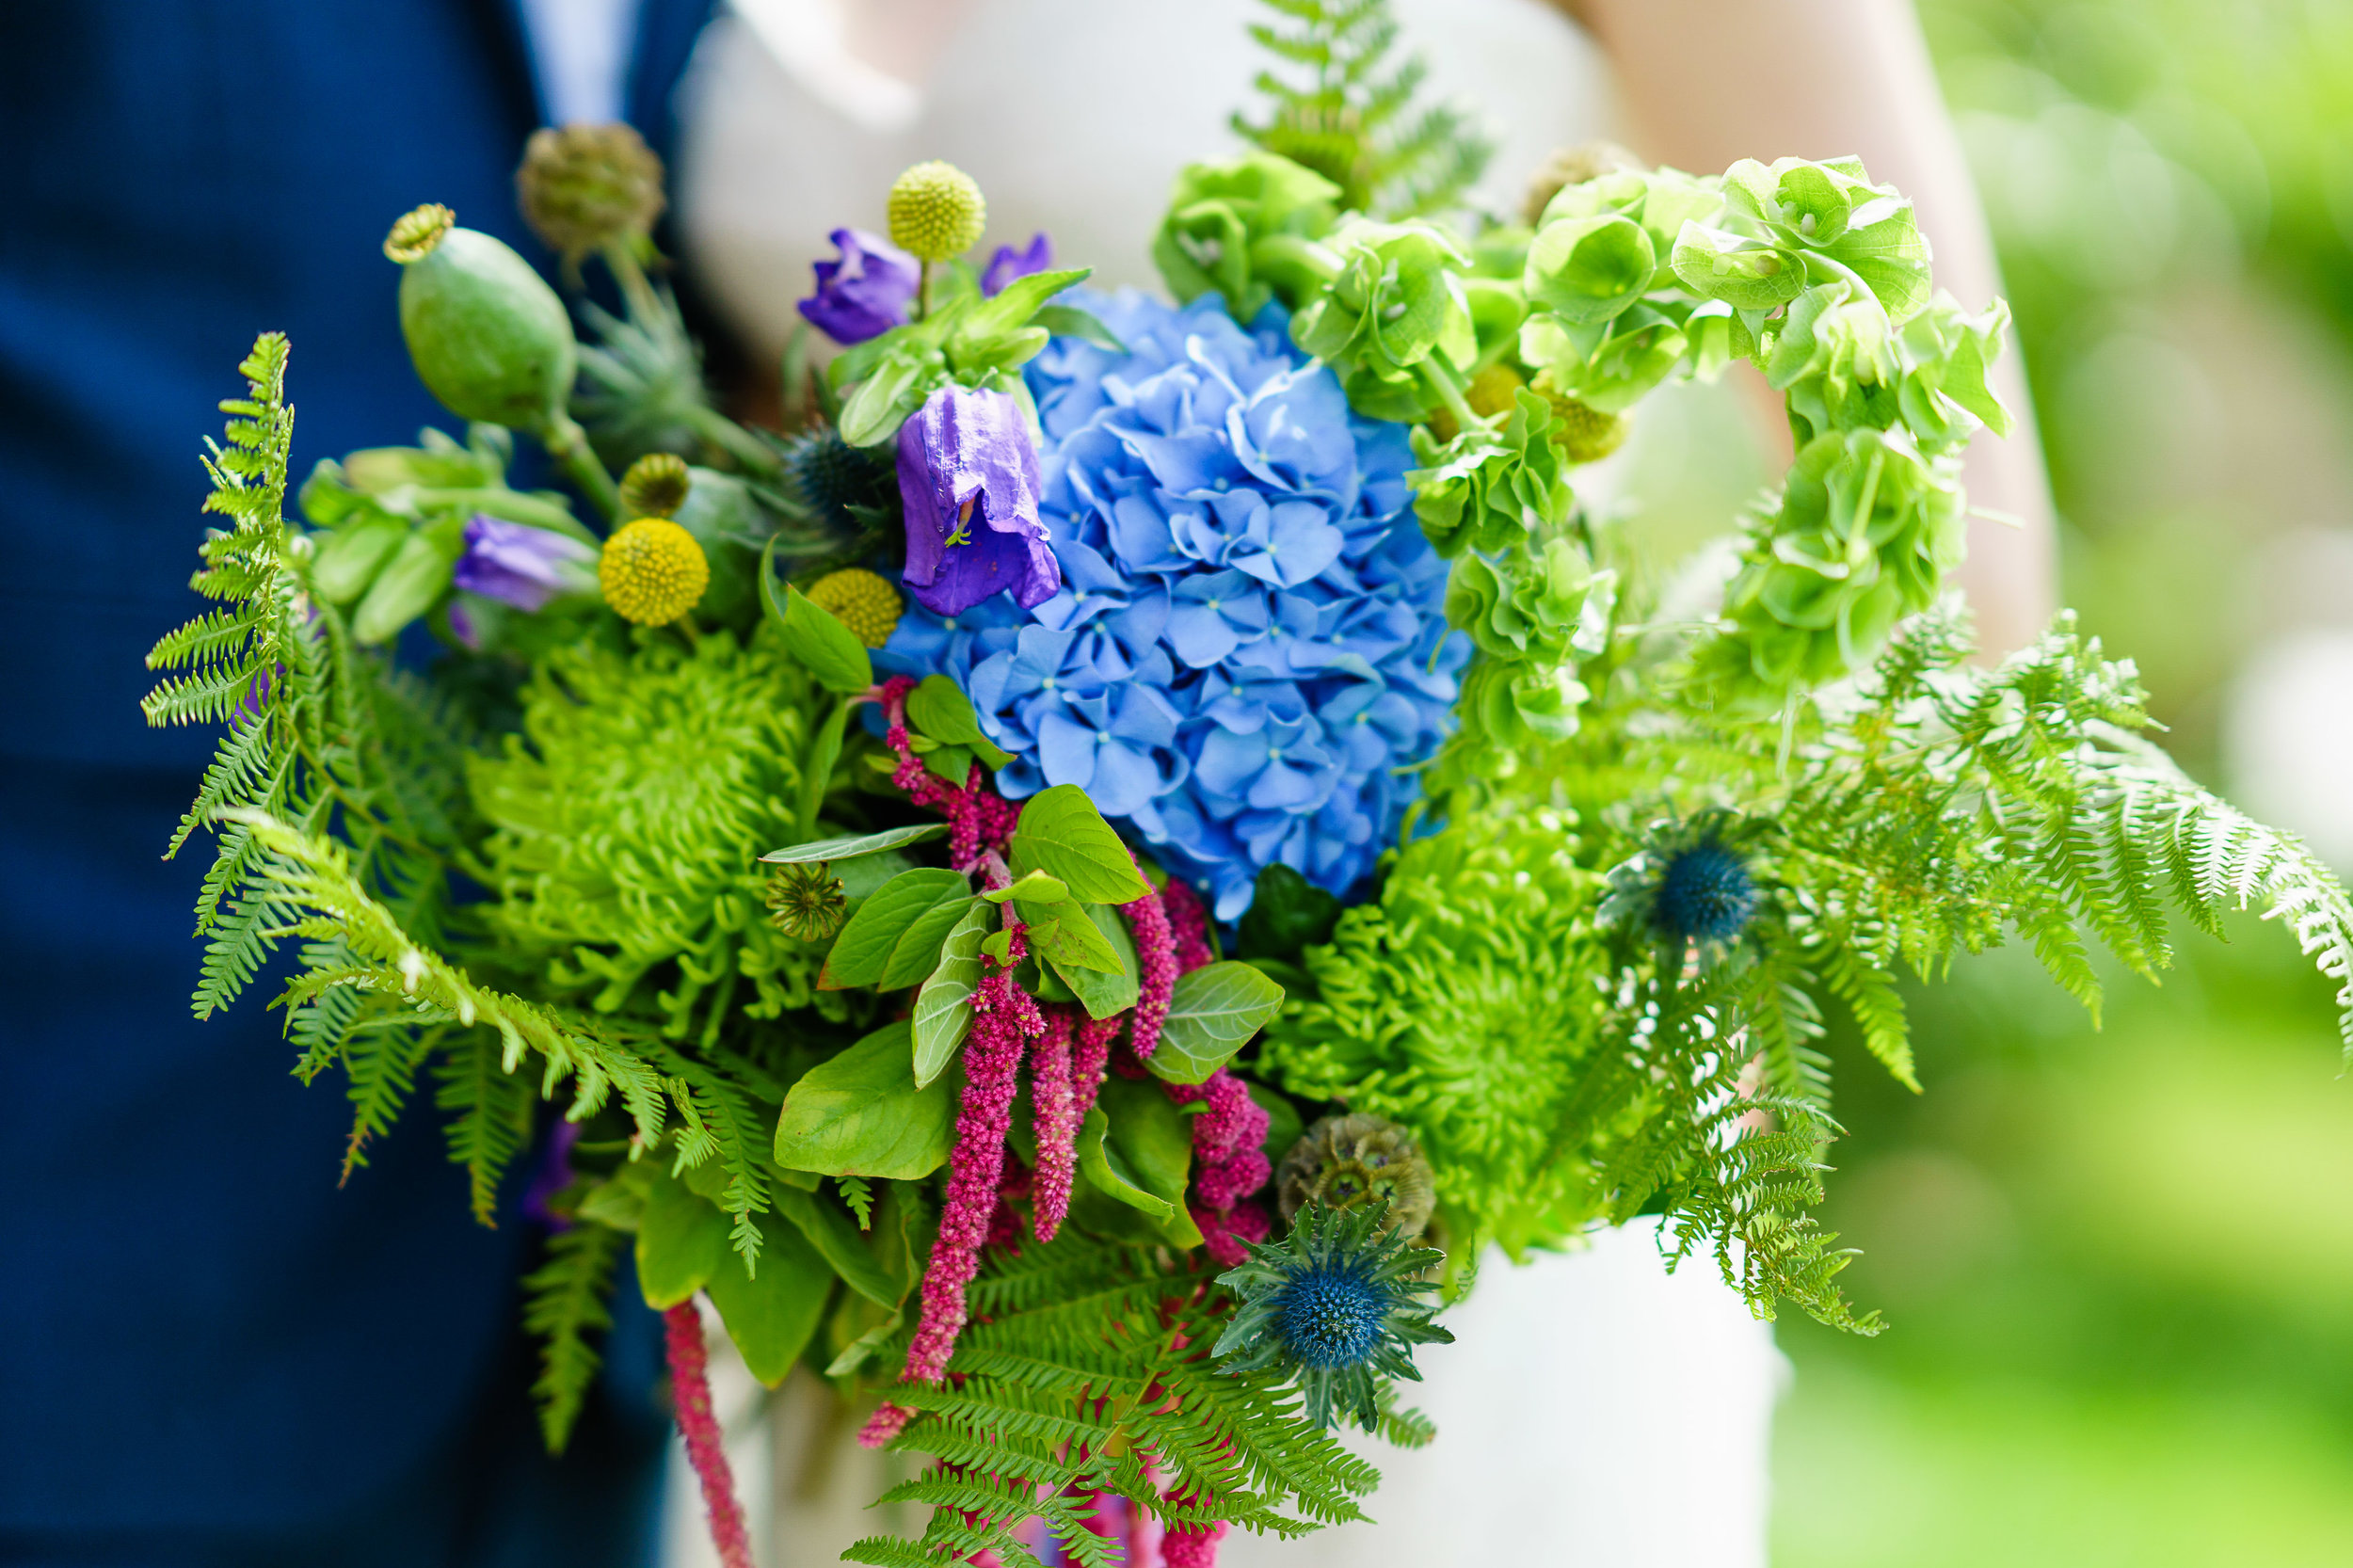 dorset_florist_weymouth_flowers_weddings_funerals_19.jpg